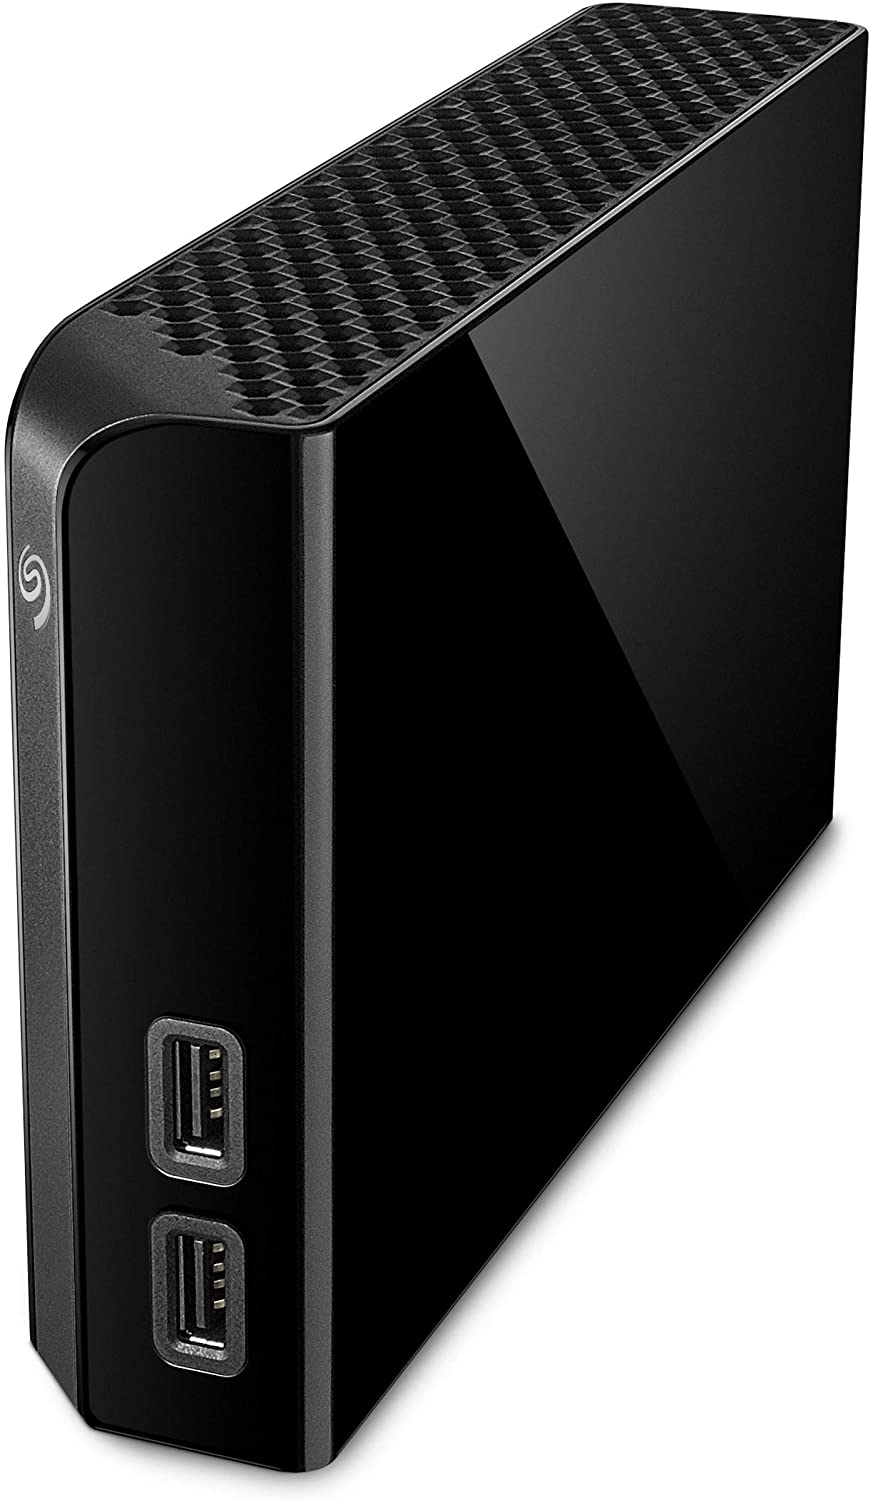 Seagate Backup Plus Hub 4TB External Hard Drive Desktop HDD – USB 3.0, for Computer Desktop Workstation PC Laptop Mac, 2 USB Ports, 2 Months Adobe CC Photography (STEL4000100)